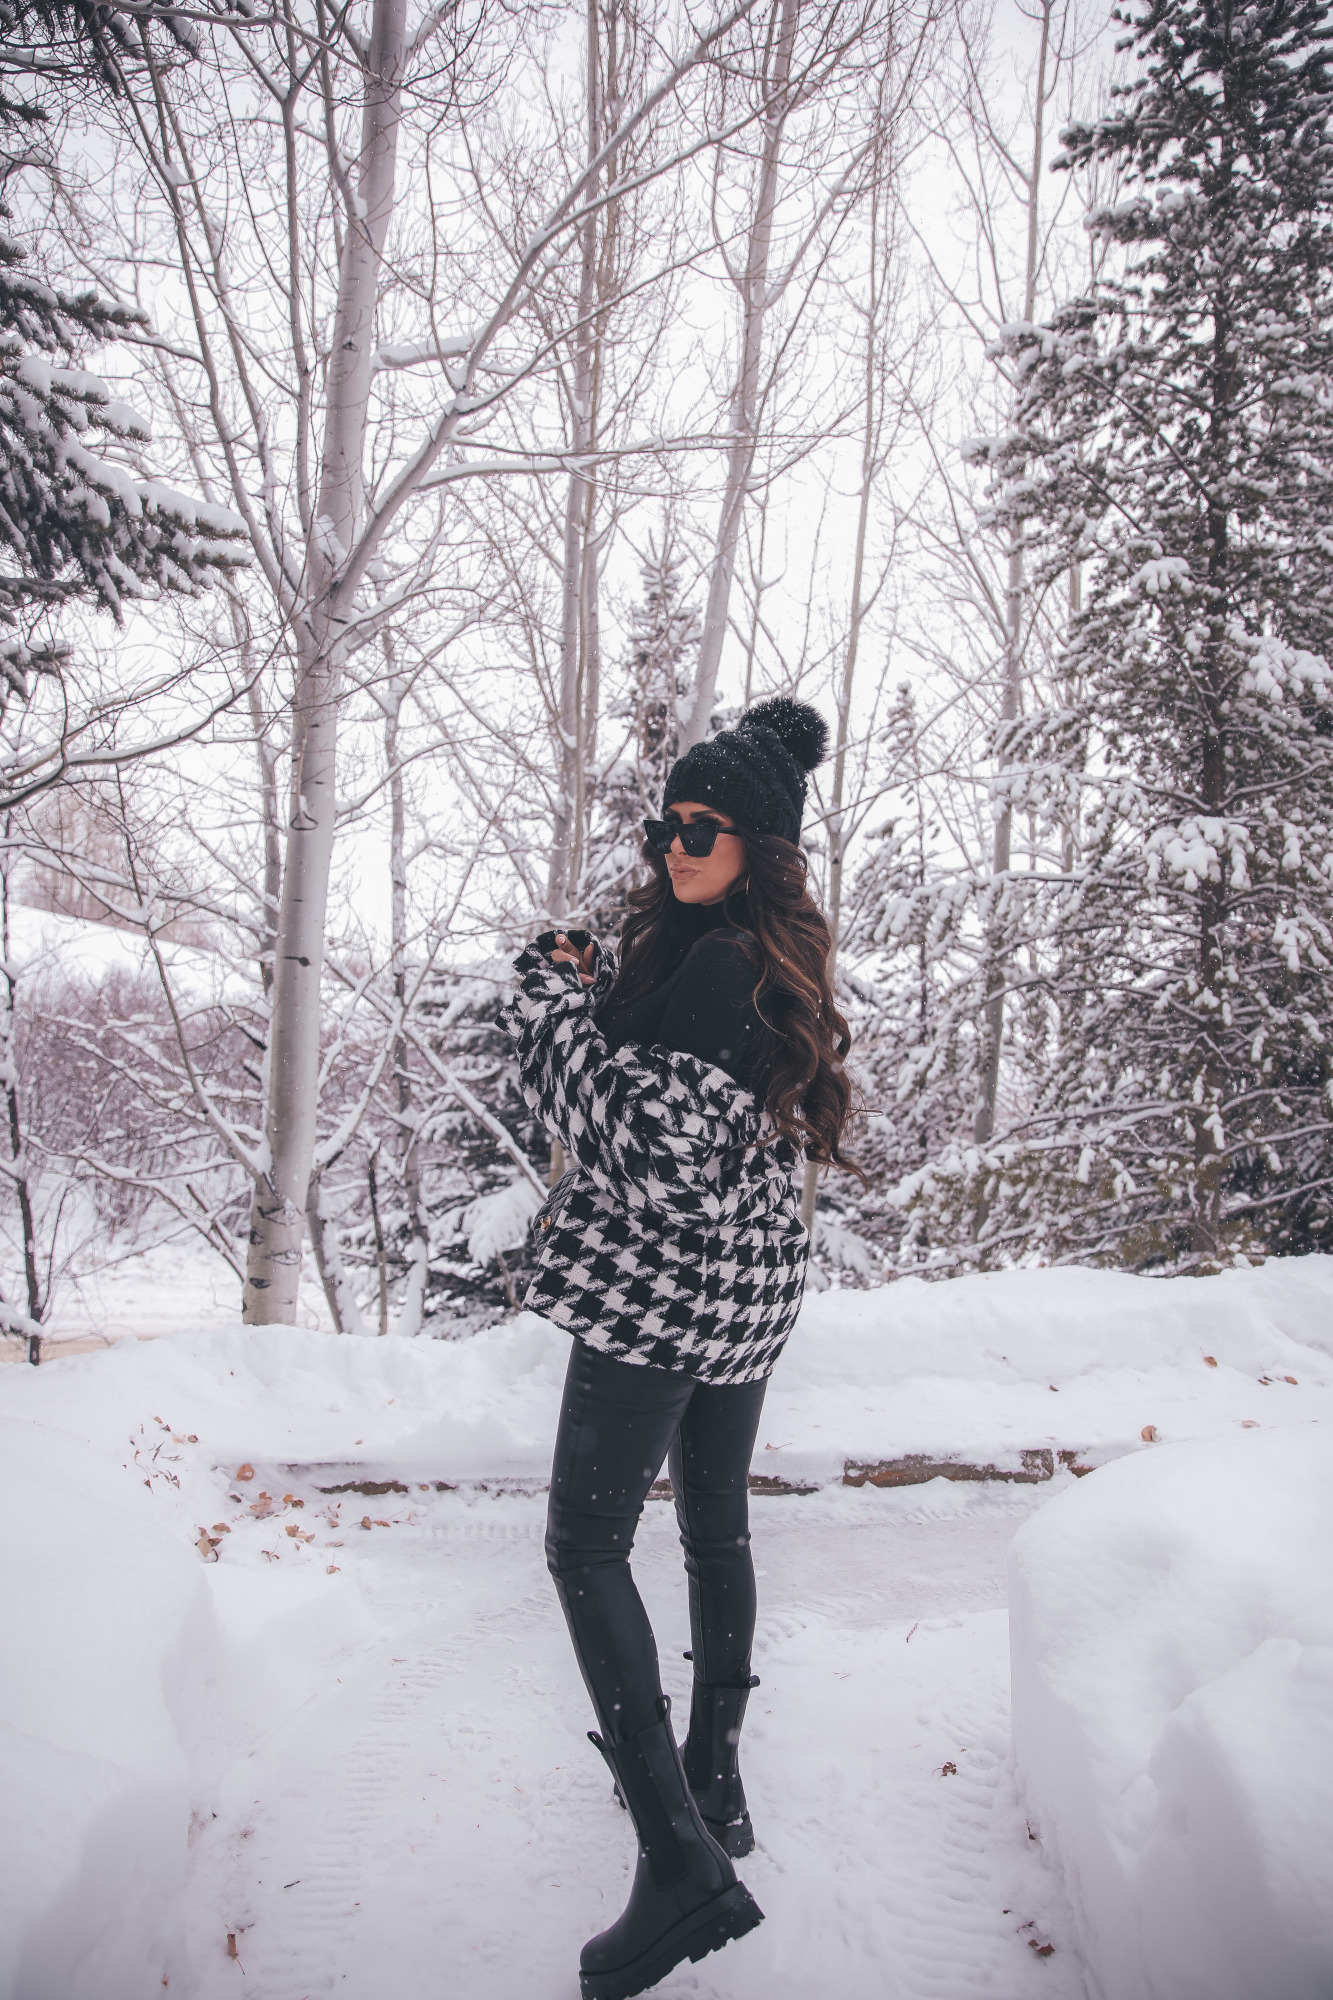 lug sole boots chelsea boots, winter outfit idea snow jackson hole, emily gemma | Lug Sole Boots by popular US fashion blog, The Sweetest Thing: image of Emily Gemma wearing a Storets black and white houndstooth jacket, Good American bodysuit, BlankNYC faux leather pants, Steve Madden black lug sole boots, BP. sunglasses, TopShop black pom beanie, Chanel handbag, Monica Vinader ring, Rolex watch, Cartier bracelets, and Iconic Nude' + KIM K.W. + White Russian Sparkle lip combo.